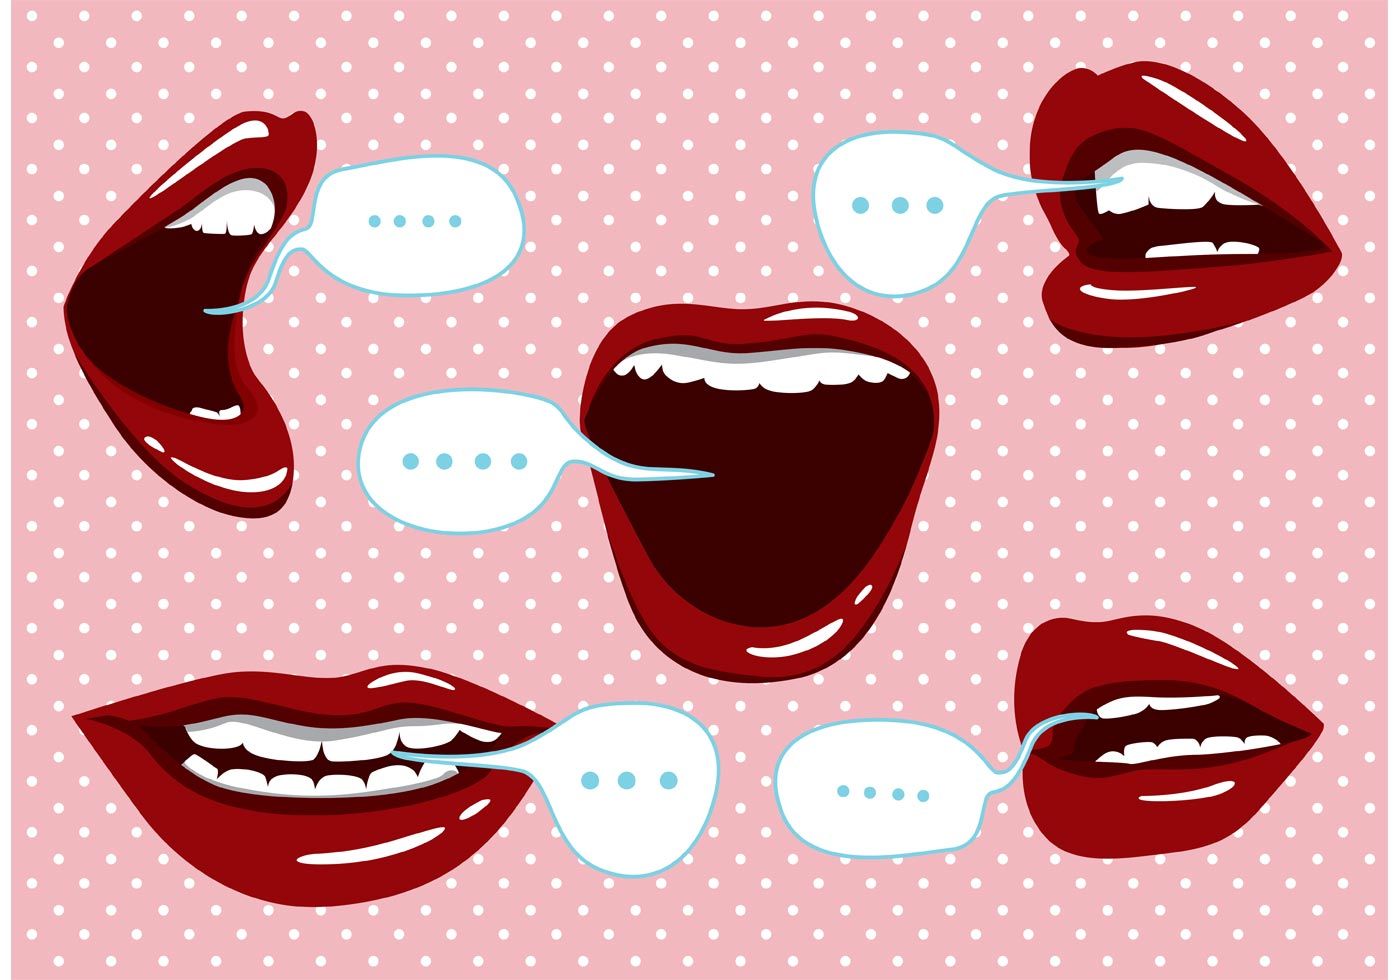 mouth talking icons download free vector art  stock graphics   images Baby Eagle Clip Art cartoon eagle clip art happy